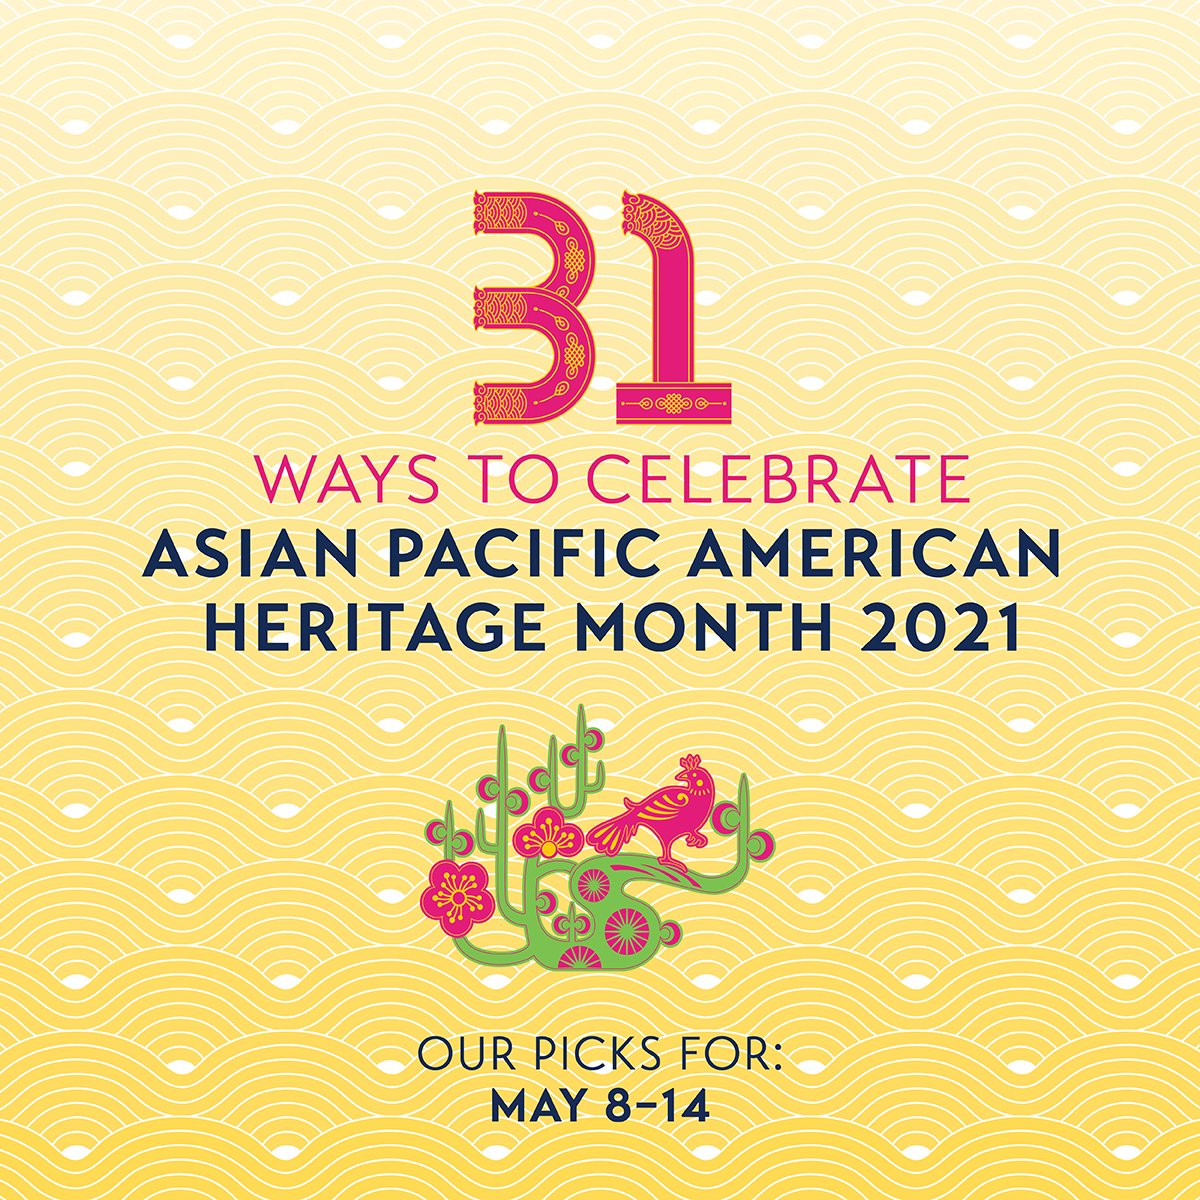 Join us as we continue to celebrate #APAHM through our daily calendar! This week's picks include our weekly Saturday art tours and a live discussion on U.S.–South Korea relation. Plus, check out our feature on soups of Houston's Asiatown! » https://t.co/Ko71HzrPLy https://t.co/AiHkIudoSO